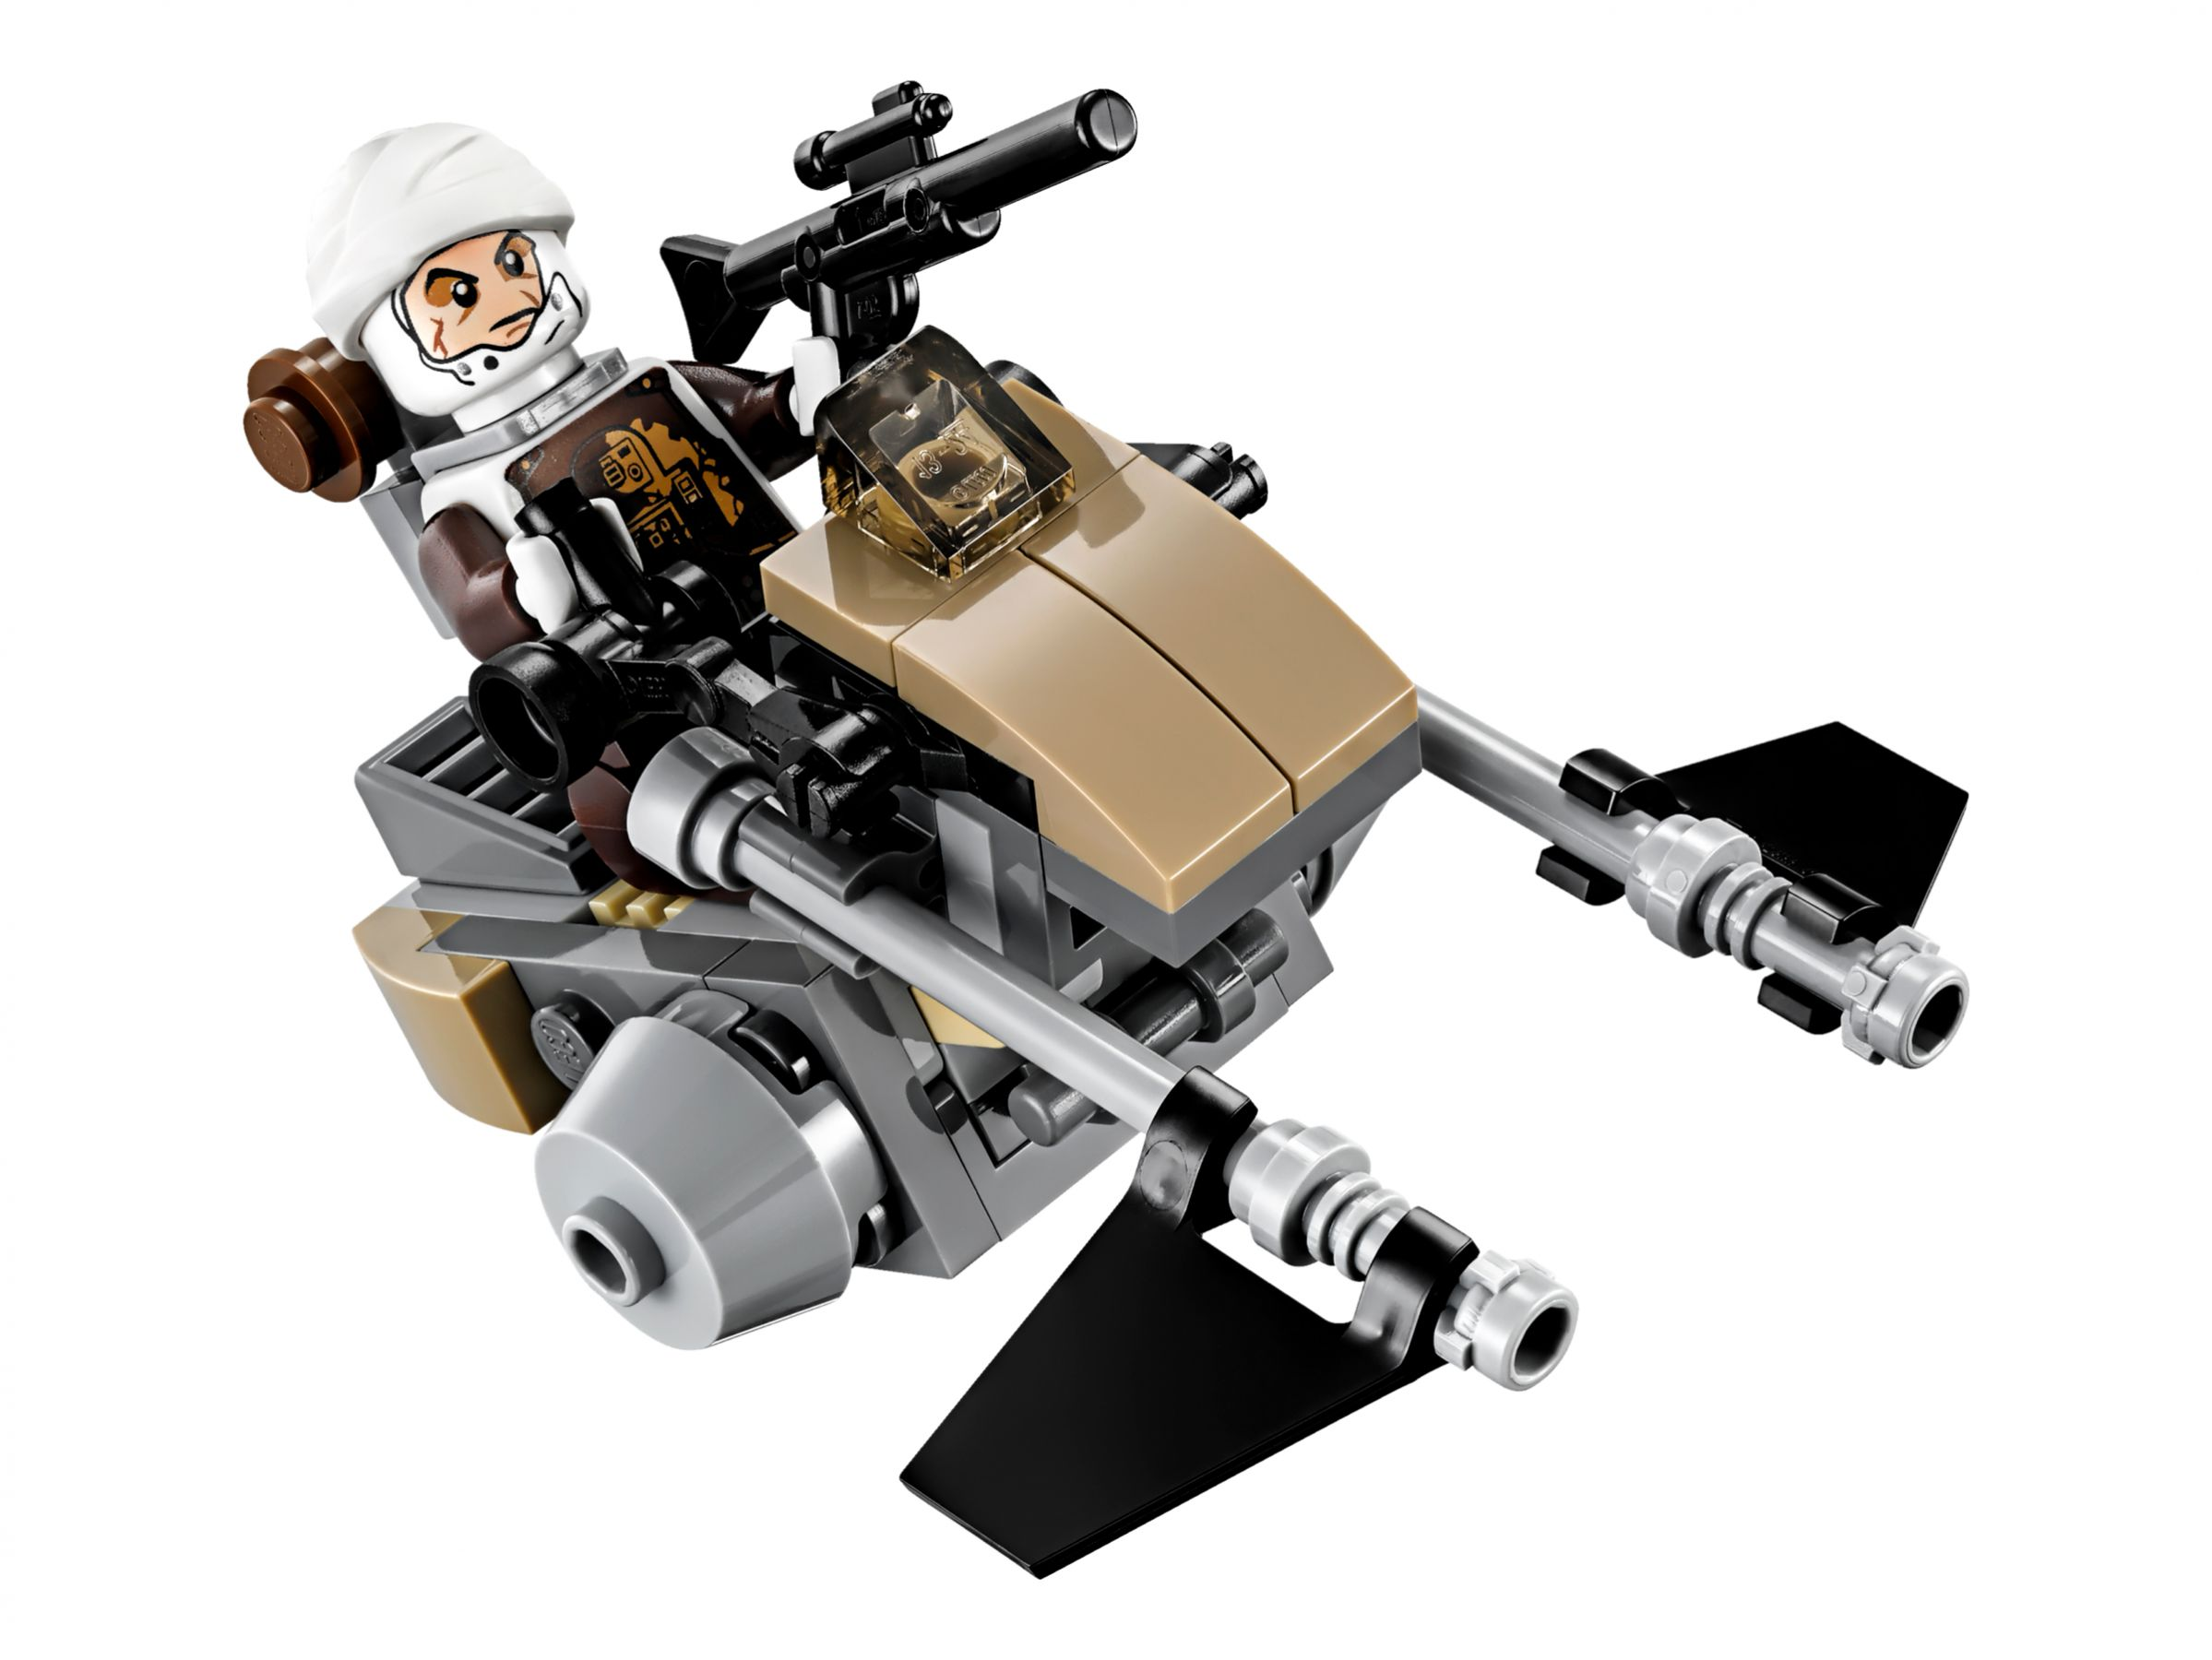 LEGO Star Wars 75145 Eclipse Fighter™ LEGO_75145_alt4.jpg